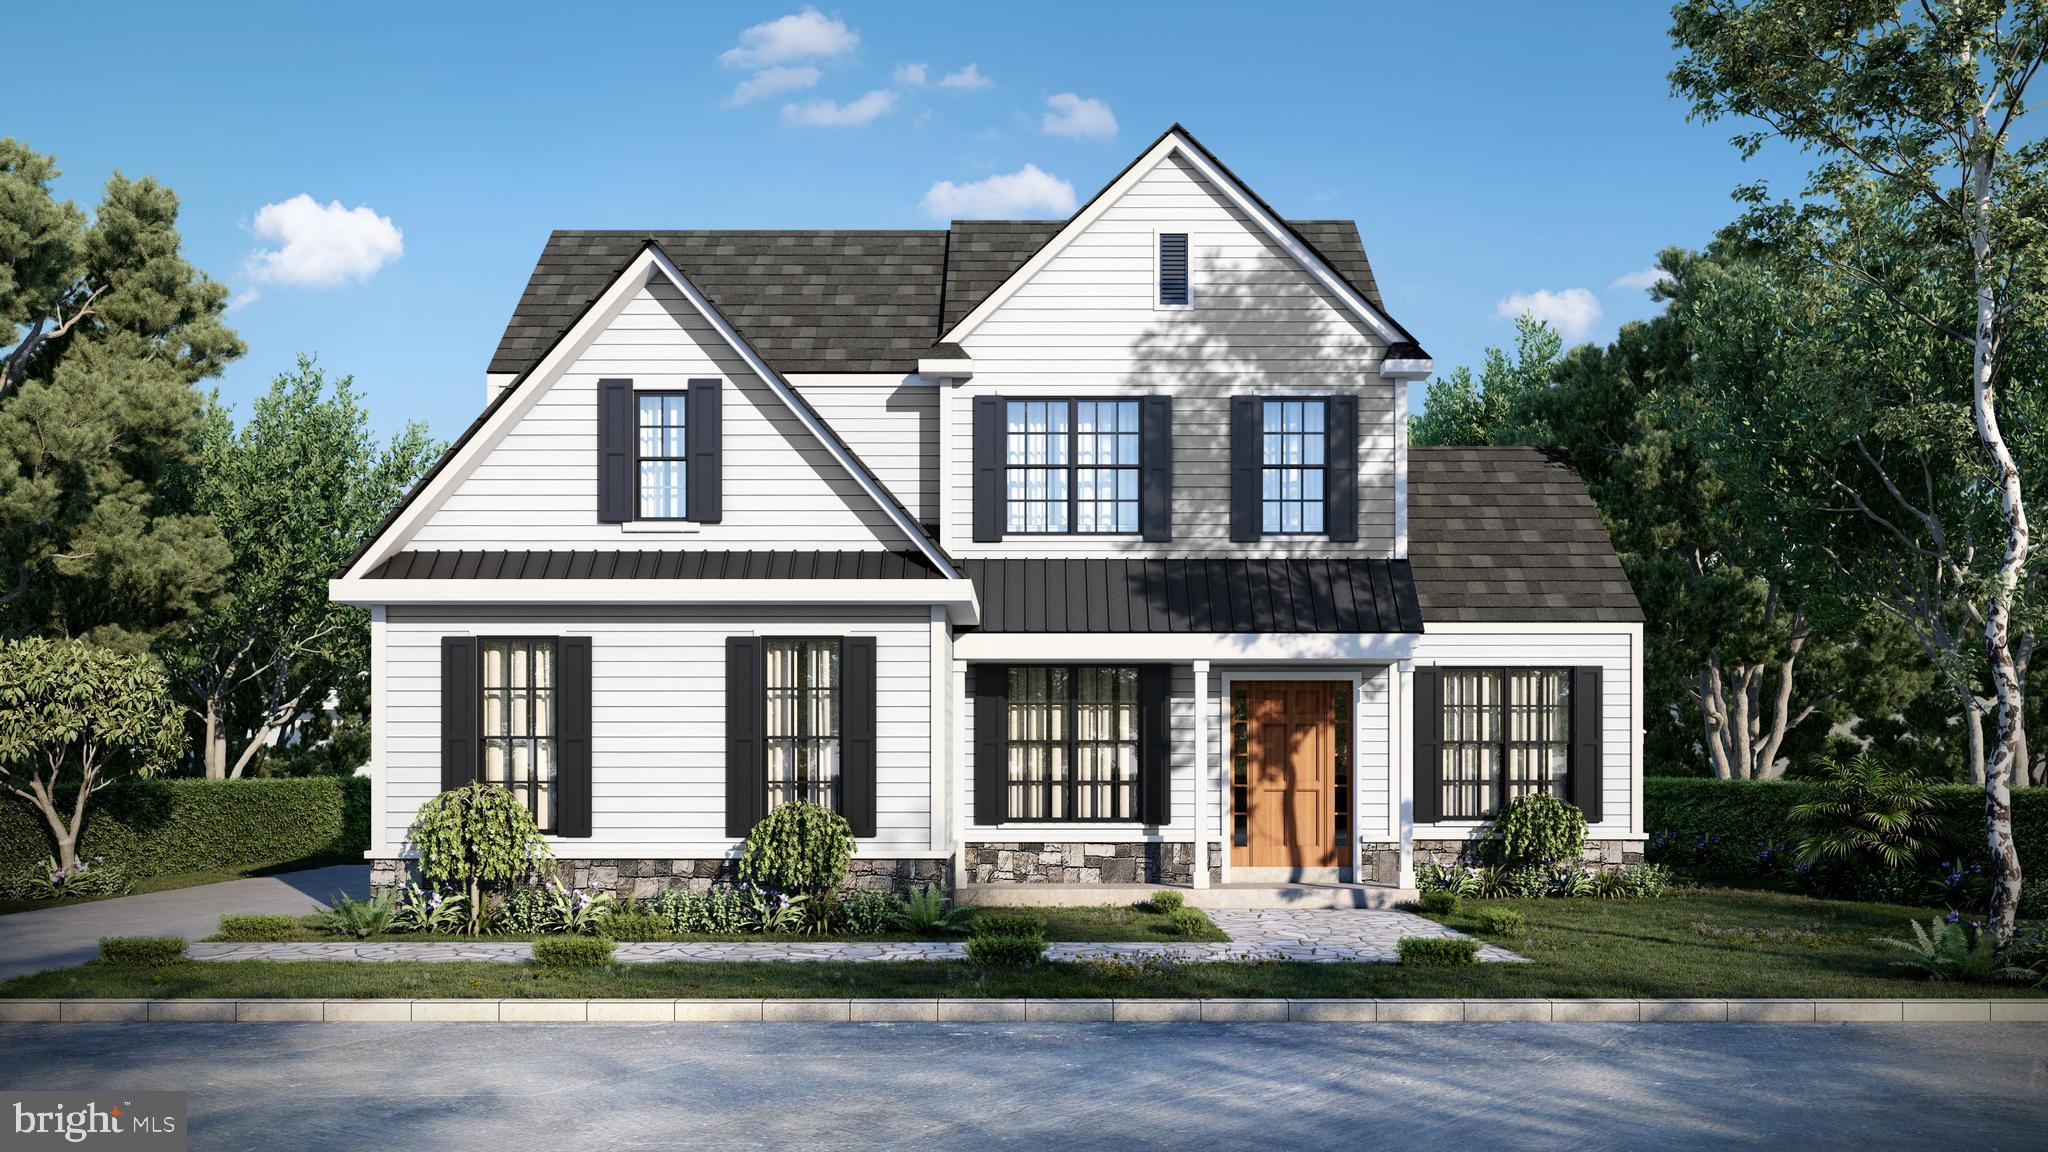 Welcome to Greenhill Road in desirable West Goshen Township! This location is as good as it gets - close proximity to the vibrant West Chester Borough, local parks, major routes for easy commuting and serviced by award-winning schools. Looking to customize? Design your dream home with the endless custom options available, but hurry as there are only 4 lots.  This brilliant floor plan offers a cozy living and dining room, bright open kitchen and a first floor study. The builder Michael A. Zappitelli is a local second generation builder and developer.  He's known for his quality craftsmanship and creative design detail.  Inquire today so he can build the home of your dreams while you enjoy every step in the process.